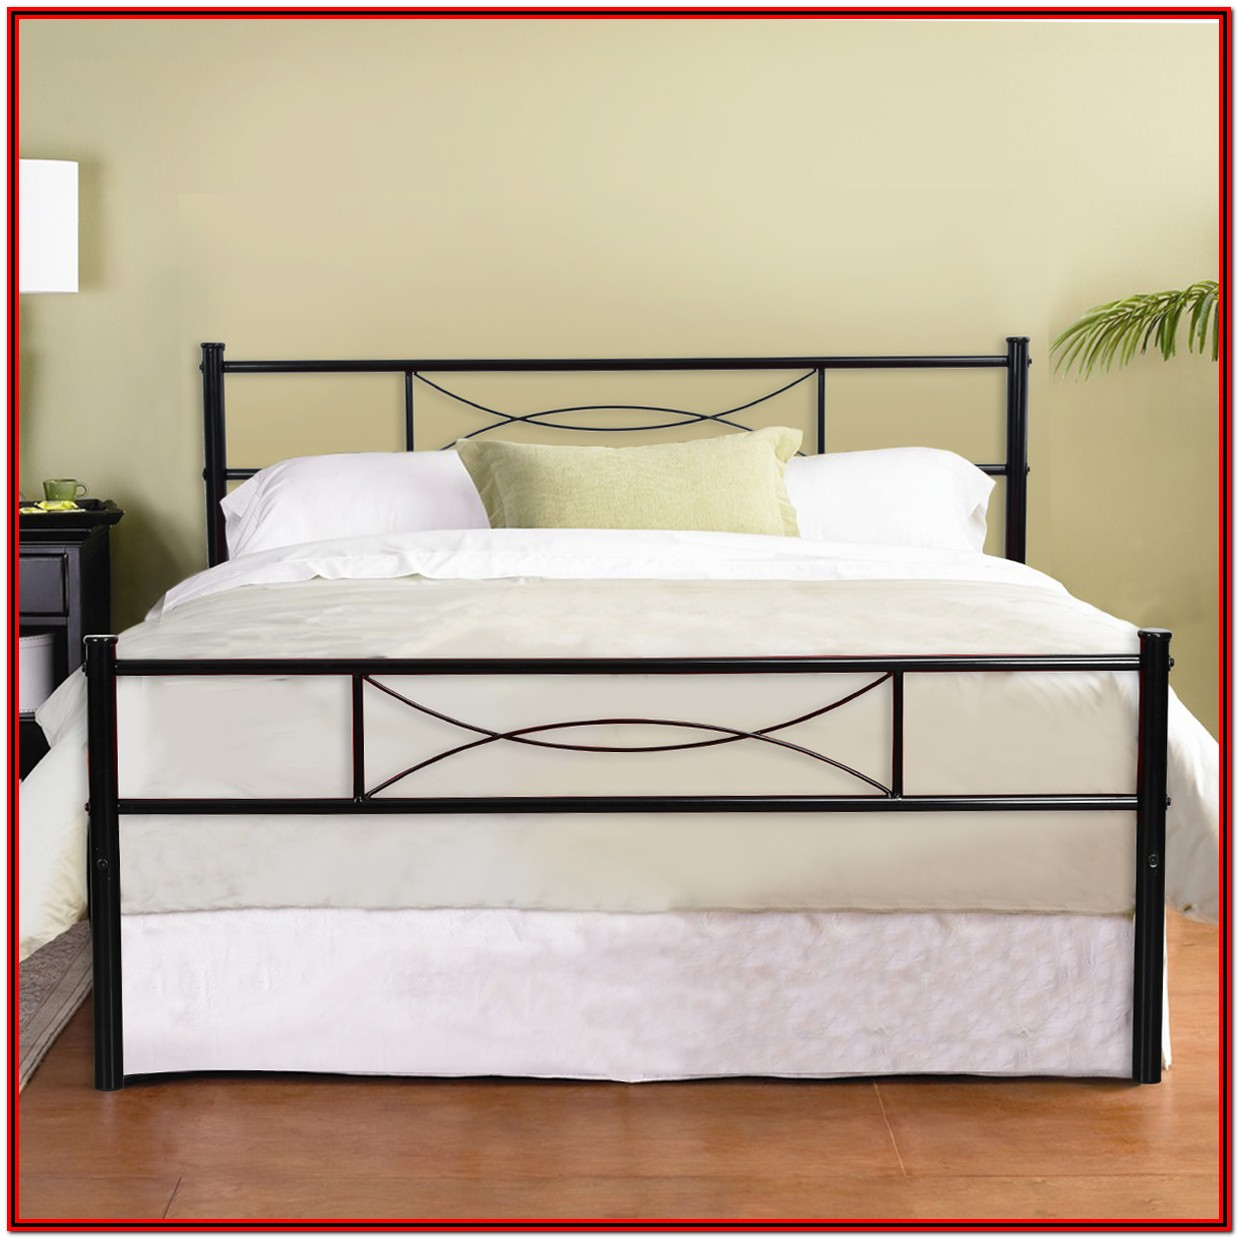 Bed Frame With Headboard Full